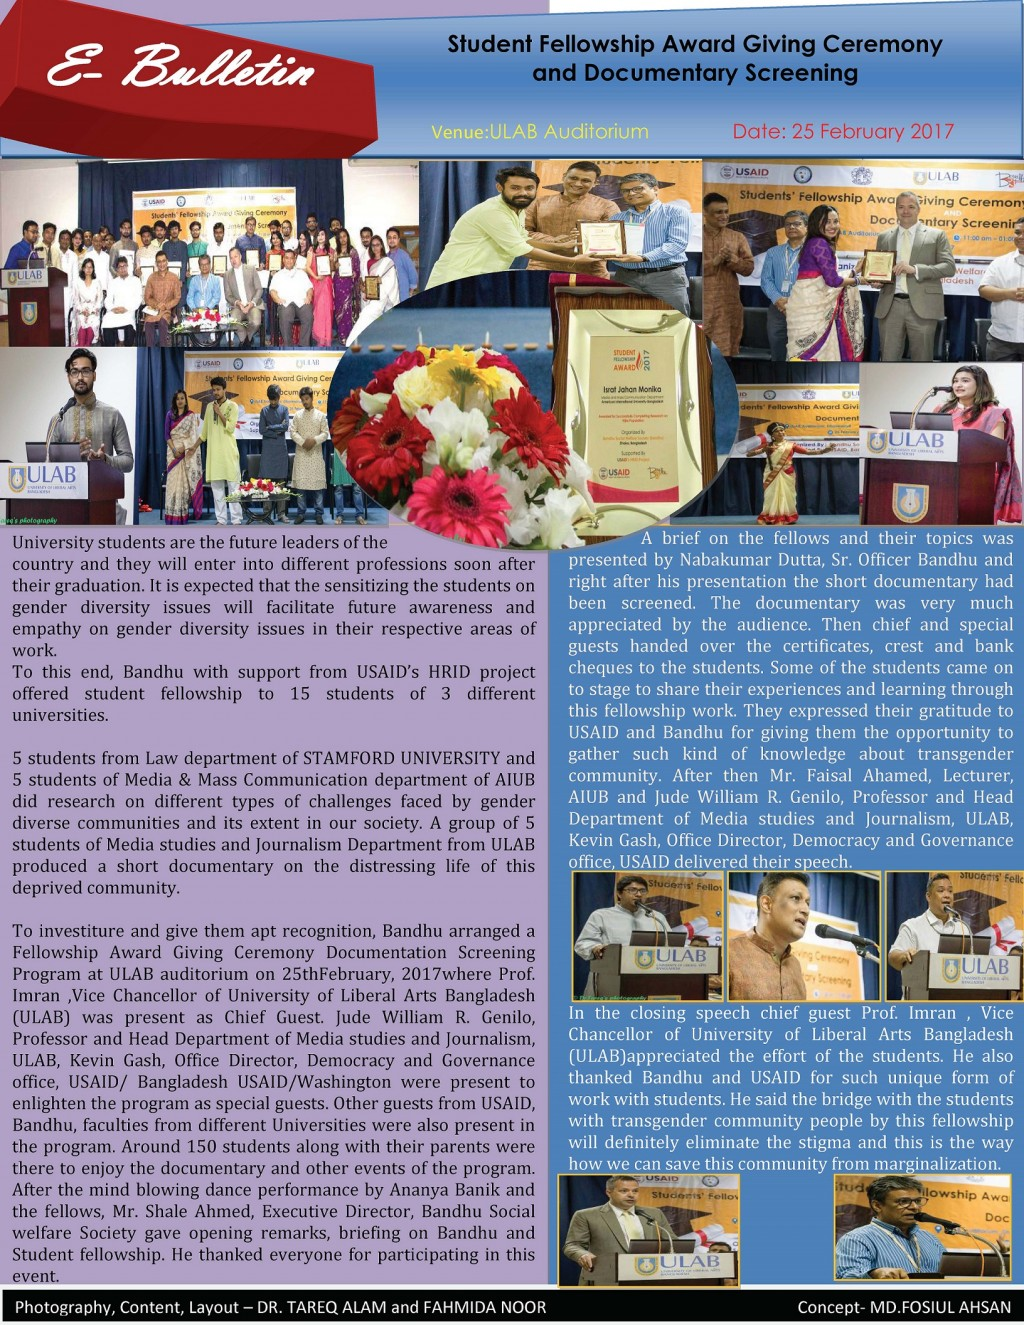 e-bulletin_student fellowship award